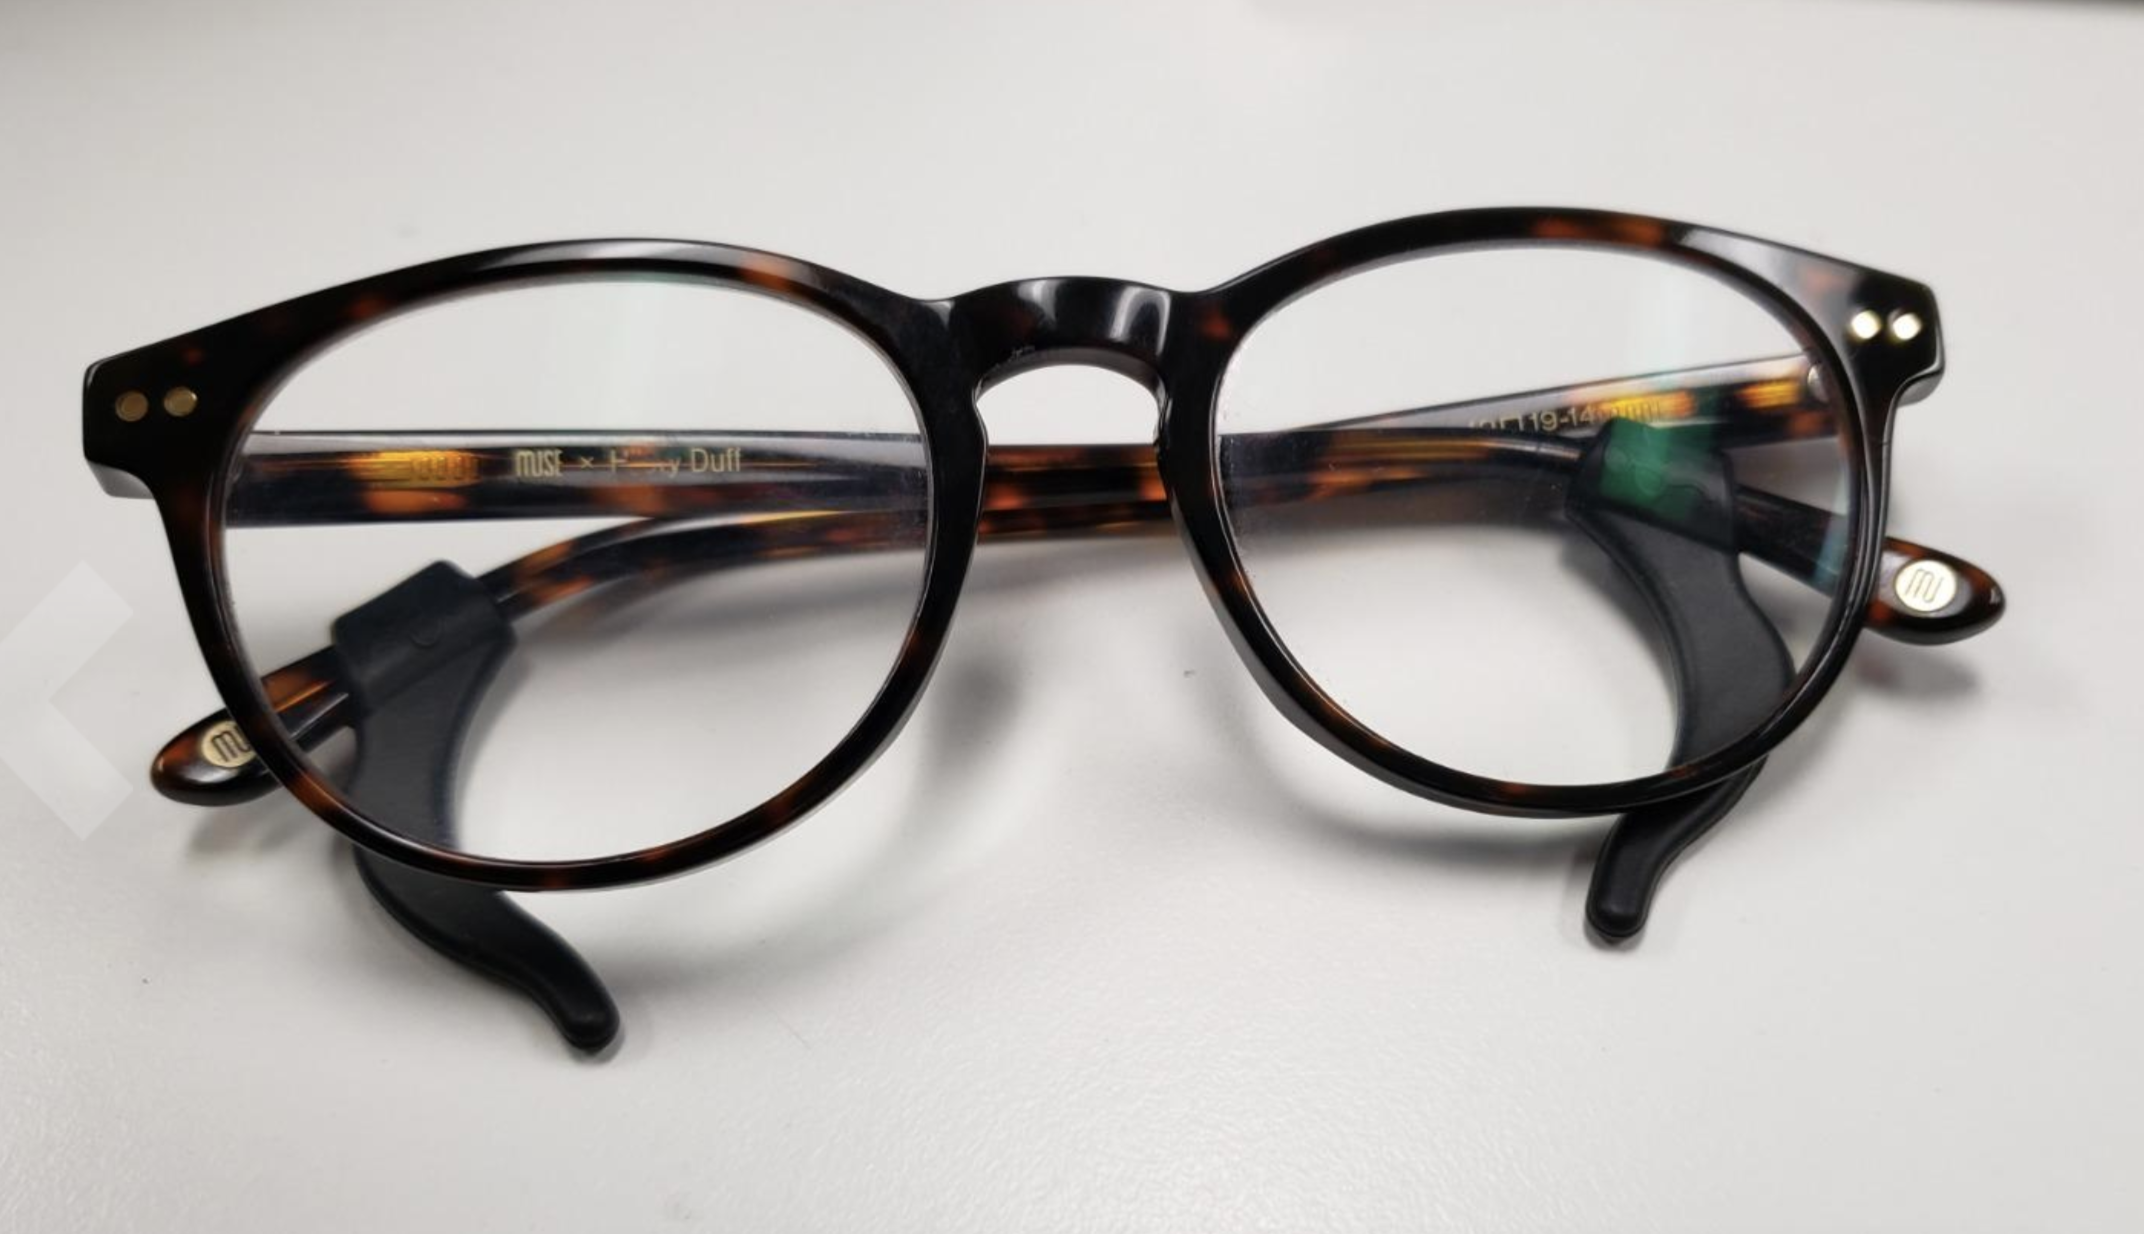 tortoiseshell frames with black silicone grippers